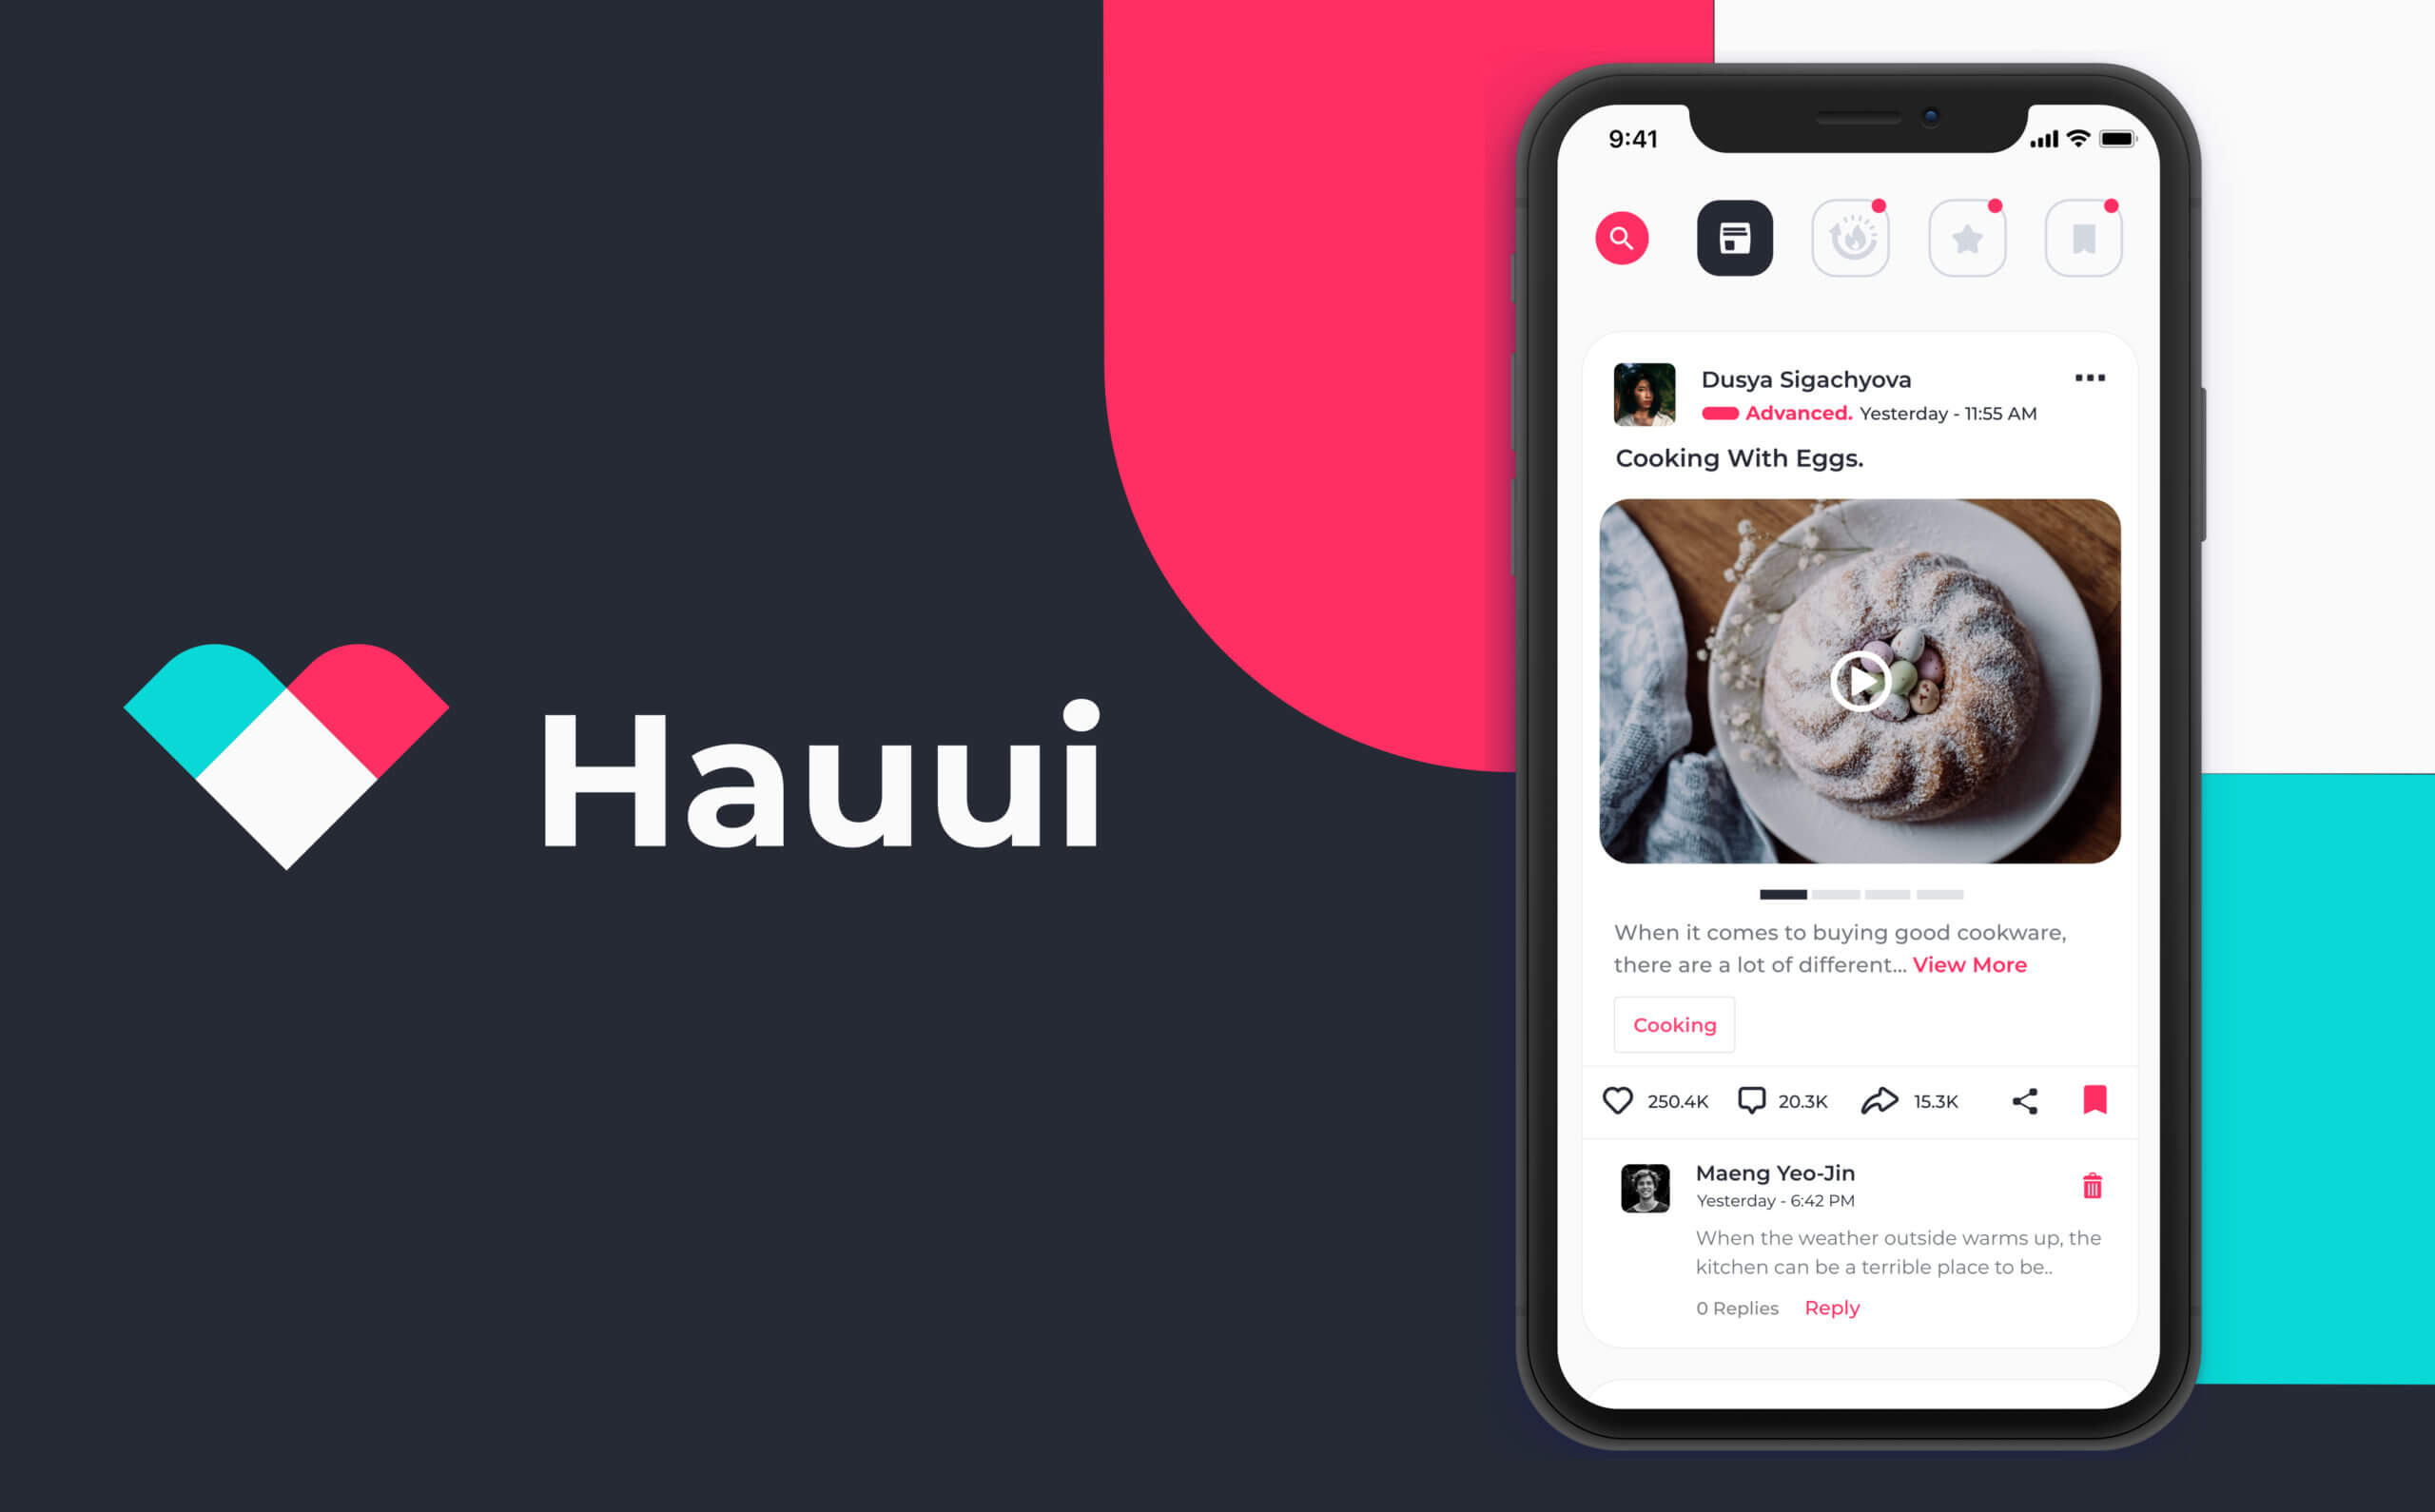 Hauui featured image